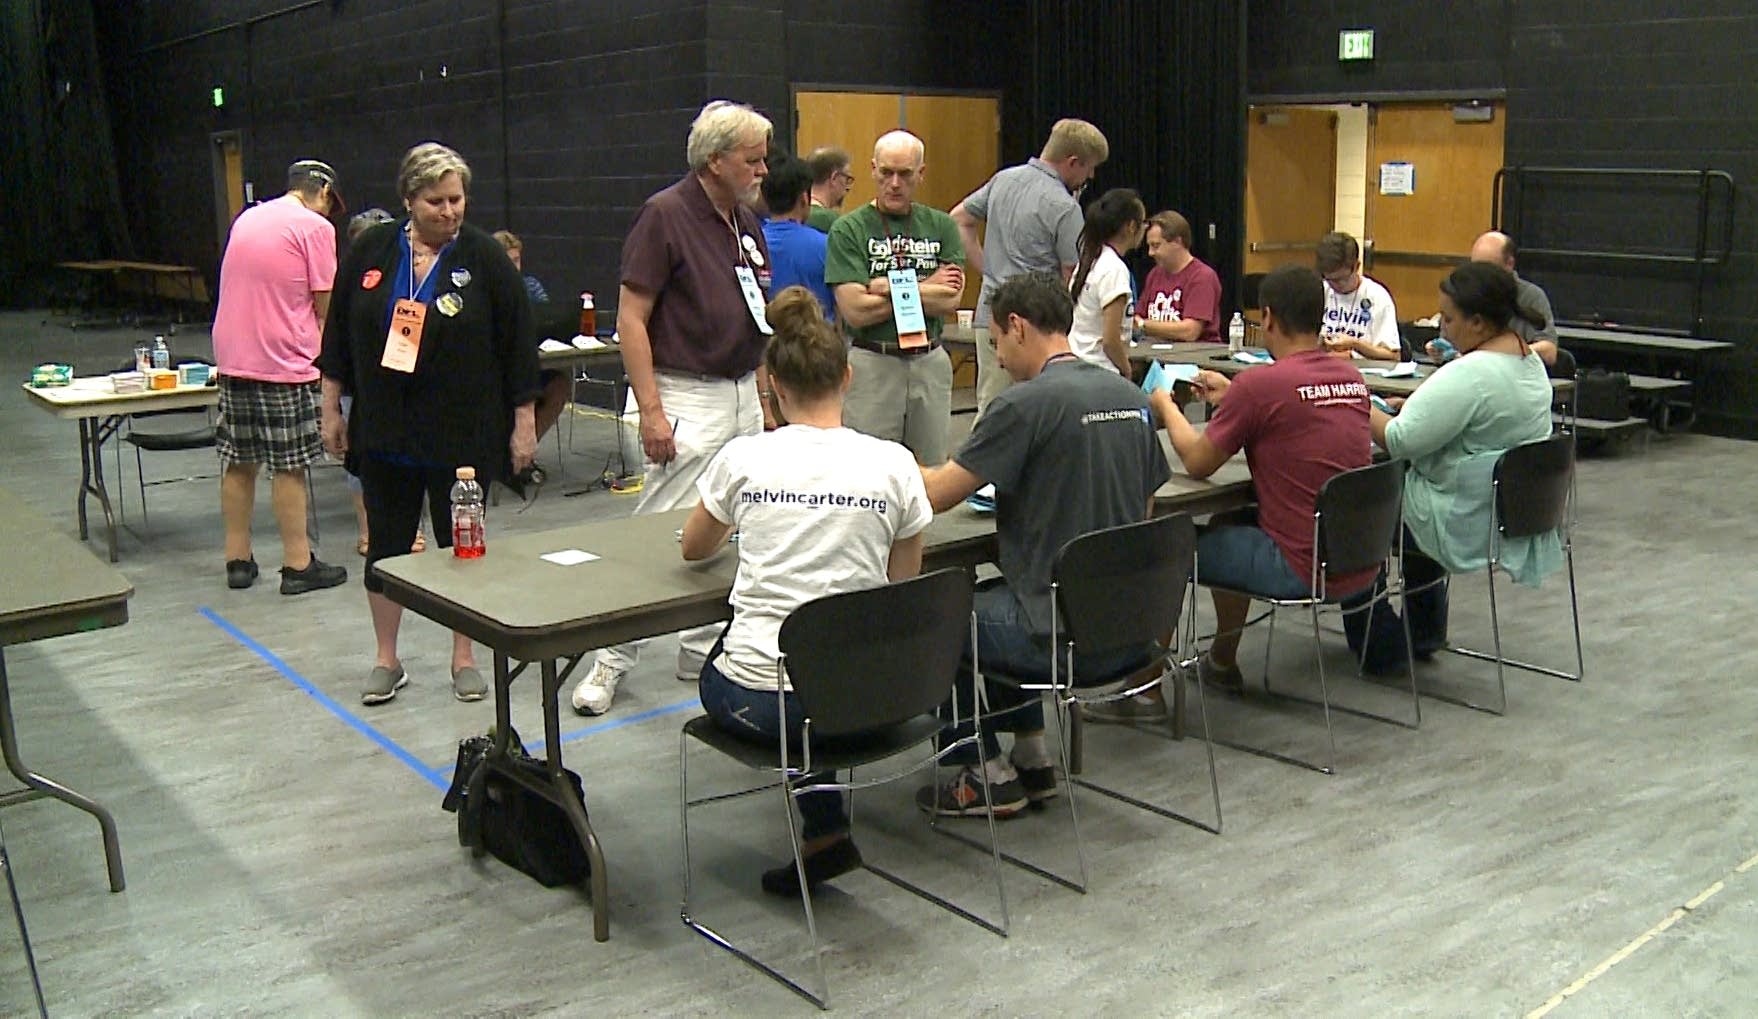 Tellers counted a round of ballots at the St. Paul DFL party convention.